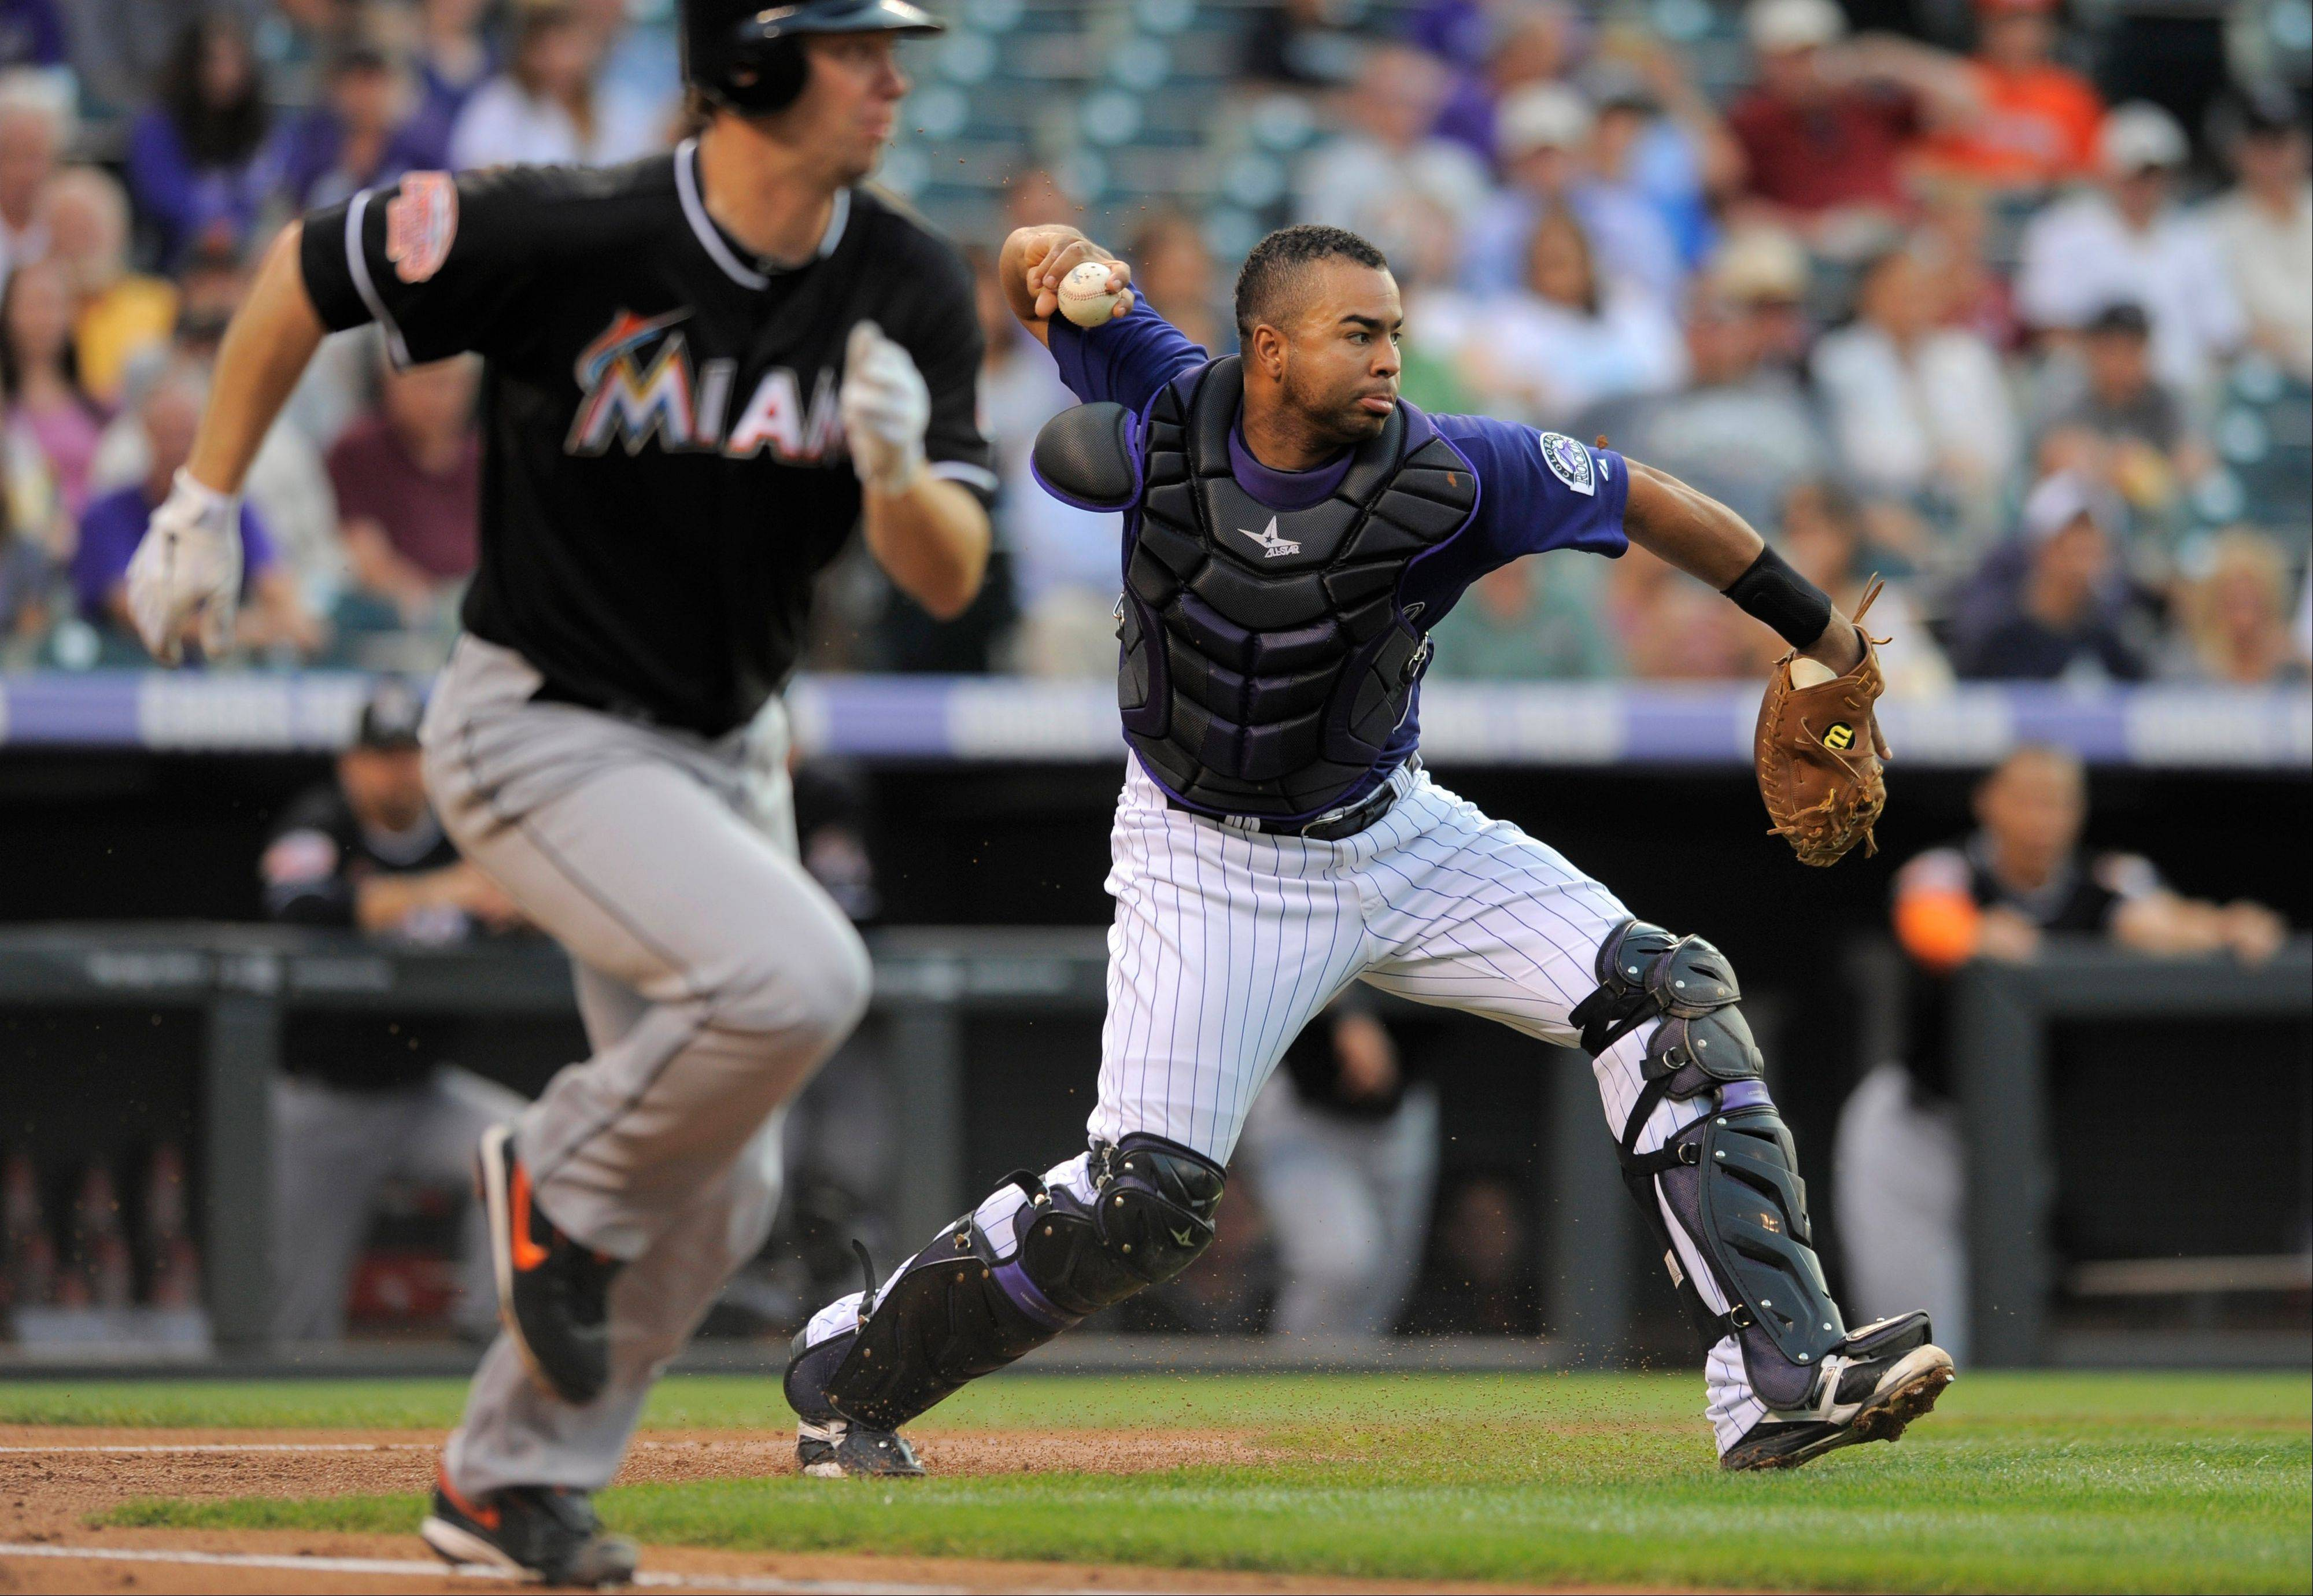 Rockies catcher Wilin Rosario throws too late to get the Marlins' John Buck at second base on a Wade LeBlanc bunt during the second inning Friday in Denver.